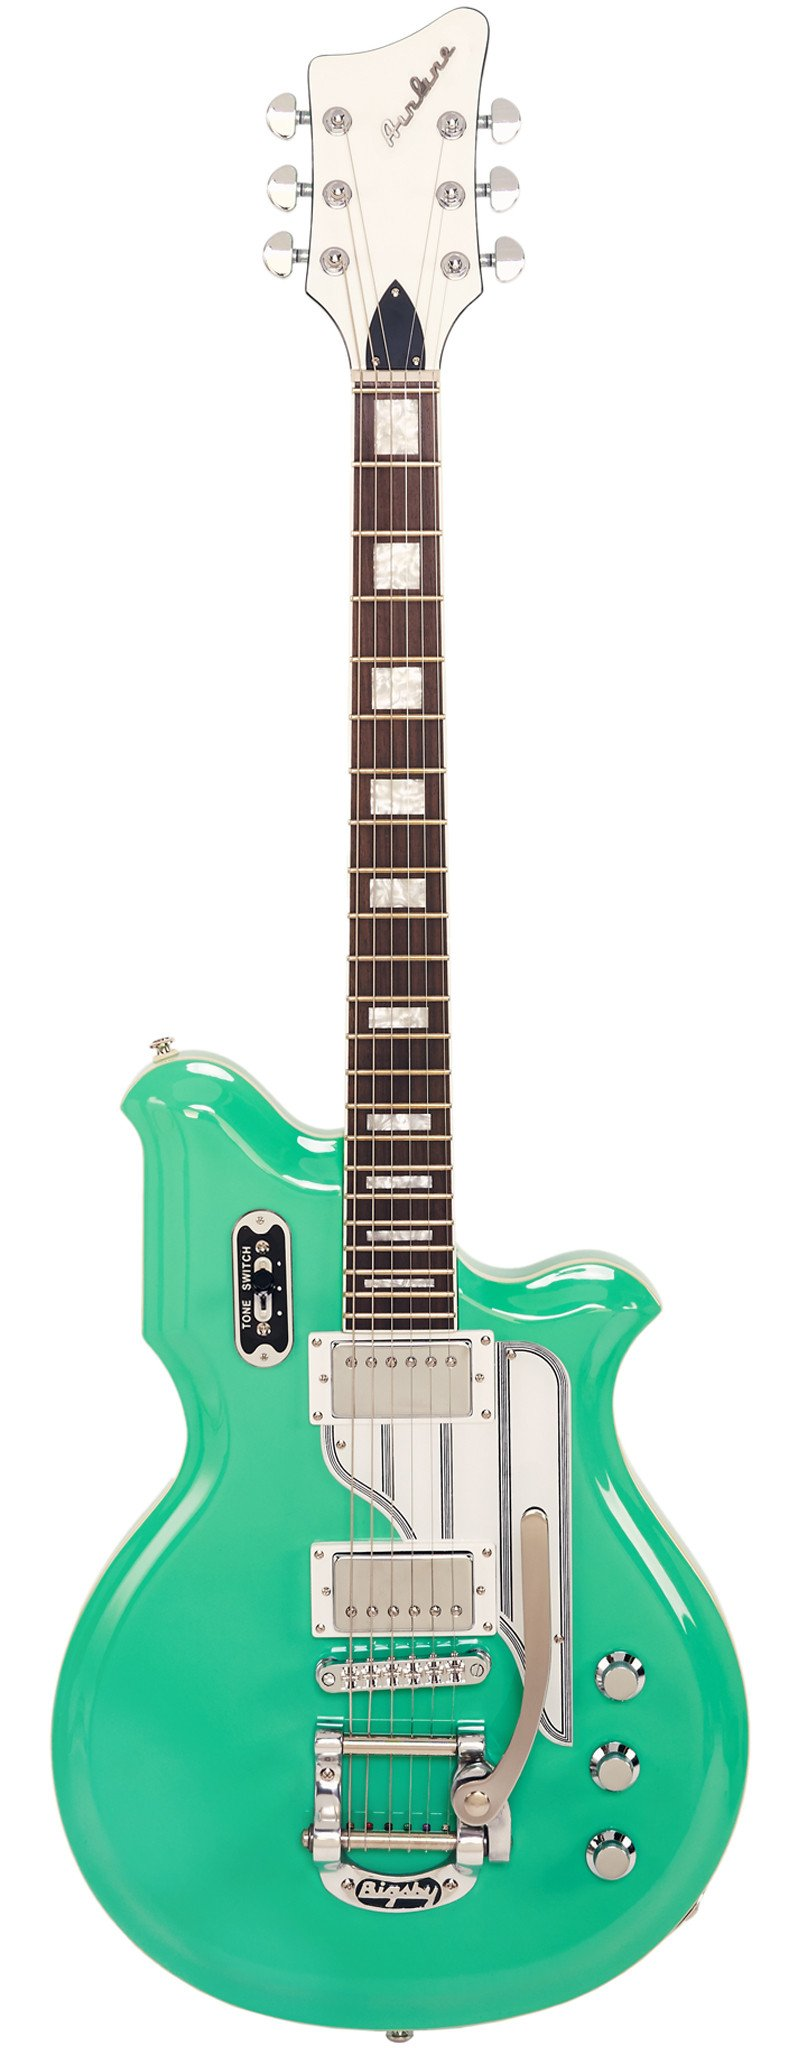 Eastwood Guitars Airline Map DLX Seafoam Green Right Hand Full Front